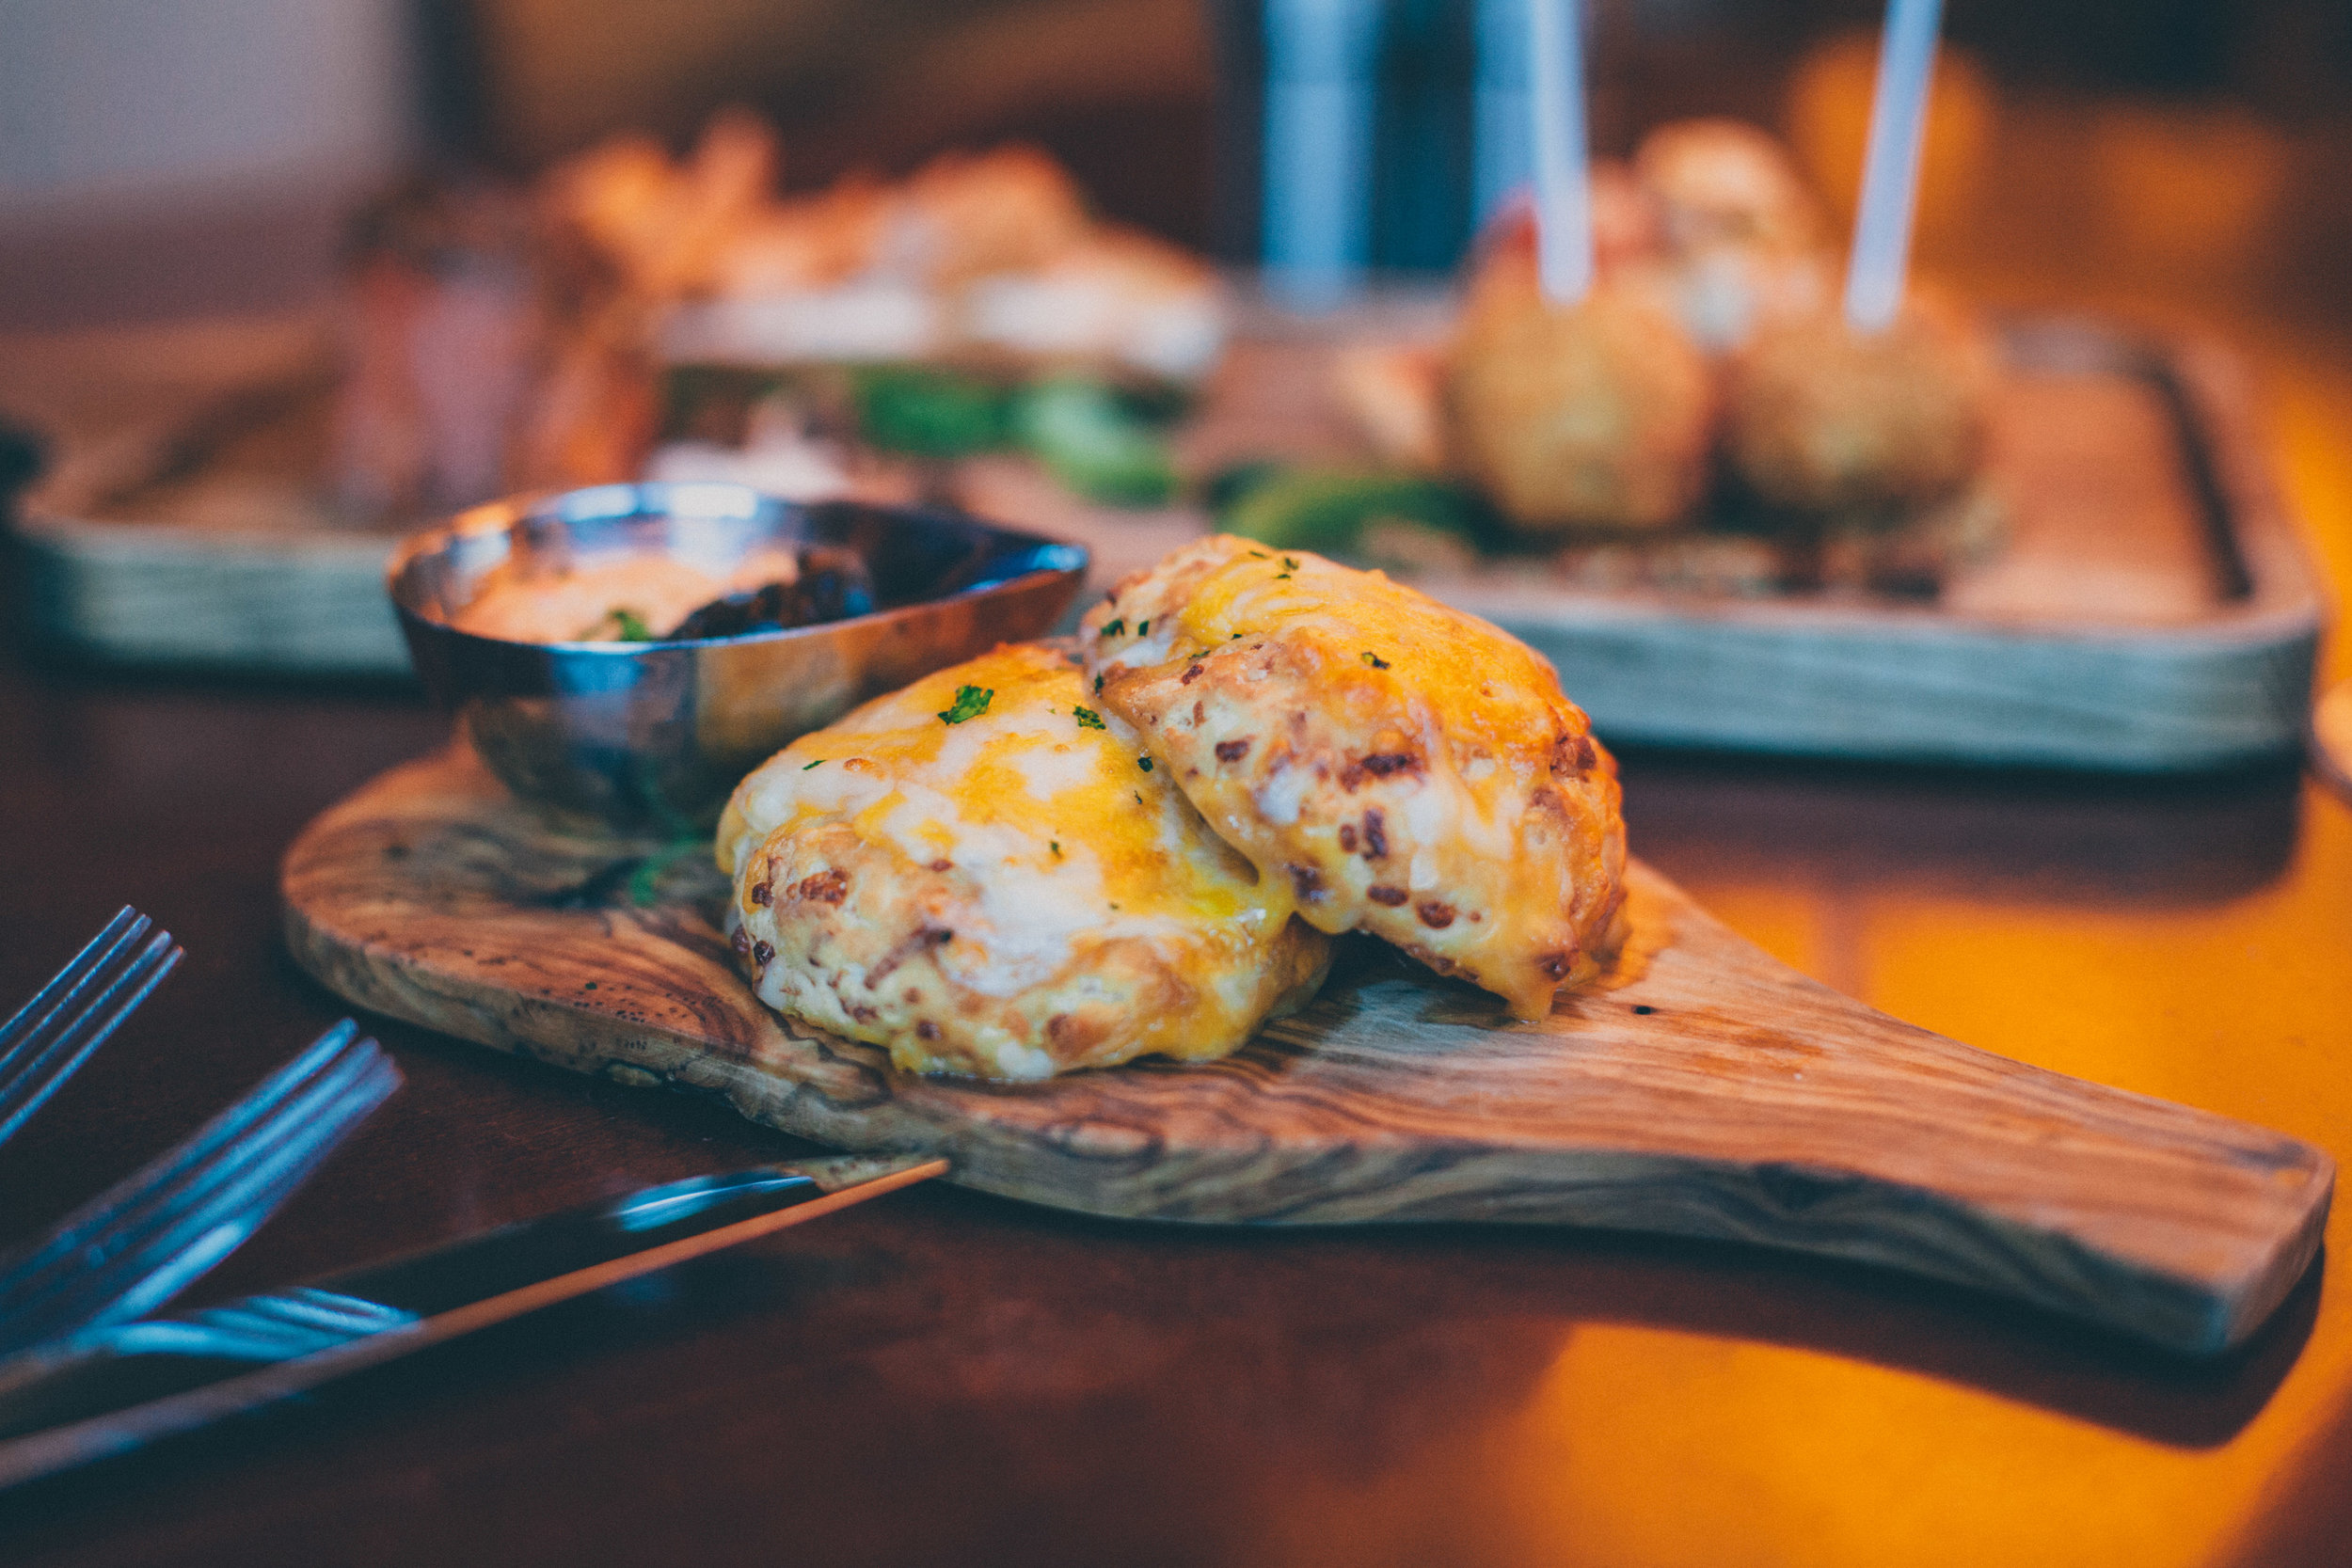 Cheddar Biscuits served with burnt onion jam and pimento spread